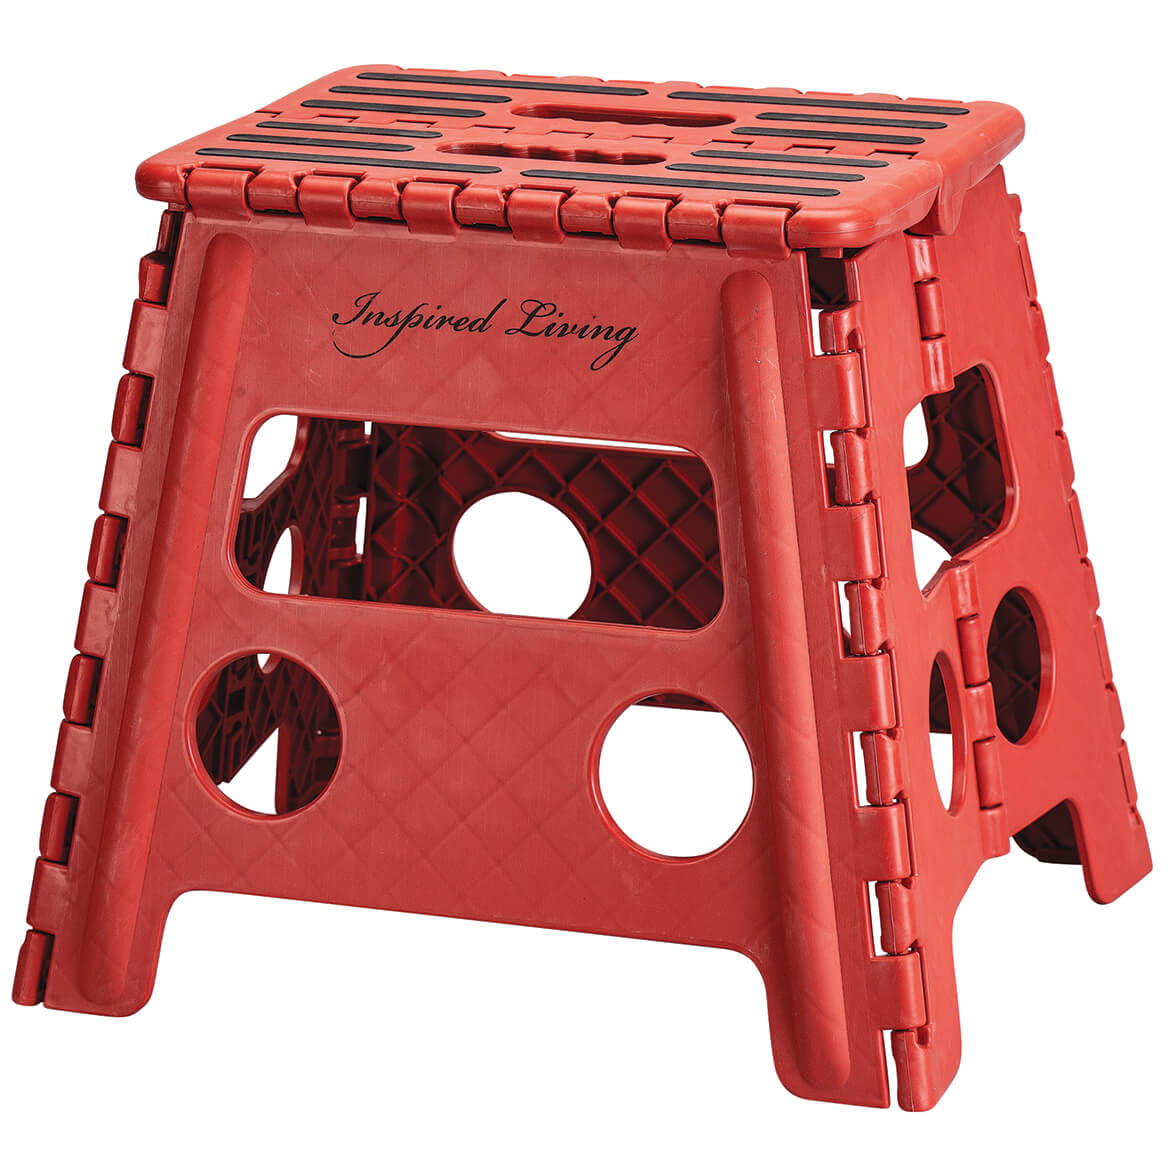 Samsonite 13 Quot Folding Step Stool Folding Stool Miles